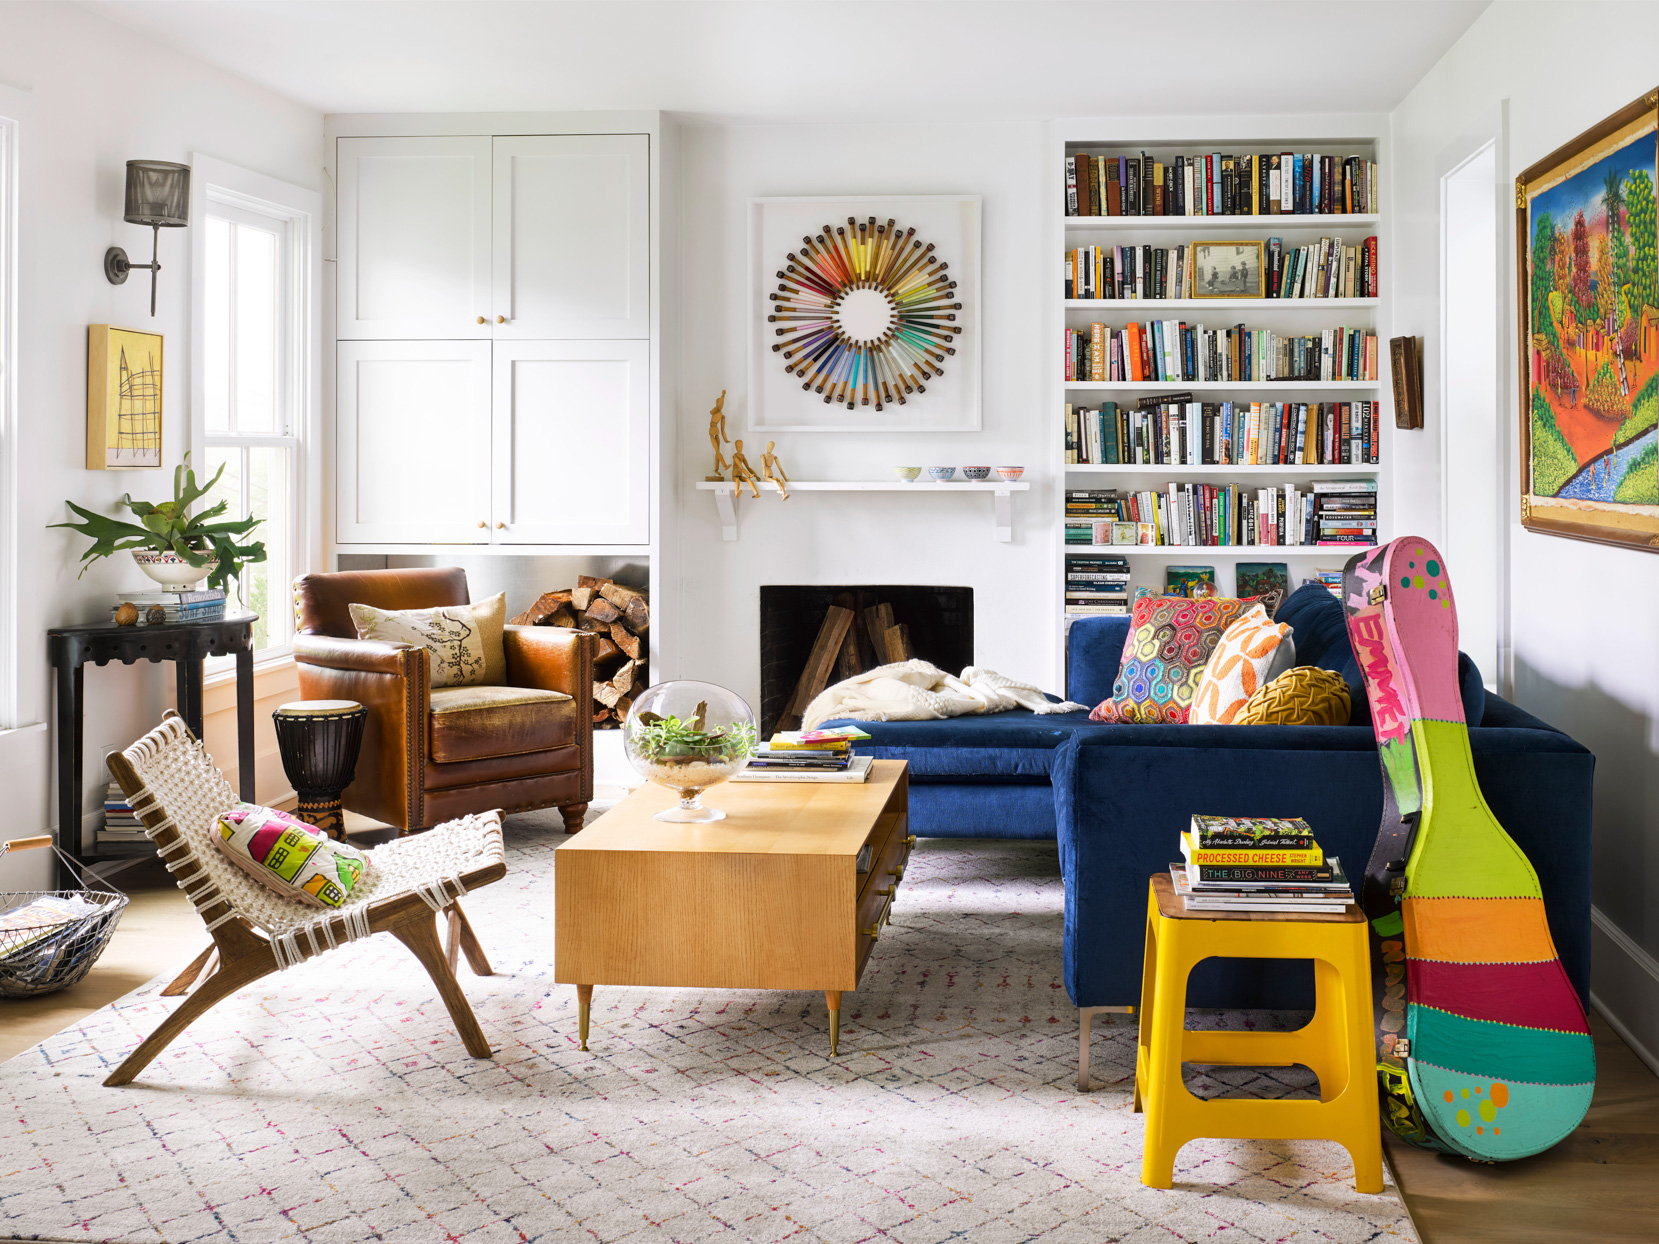 living room with colorful decor